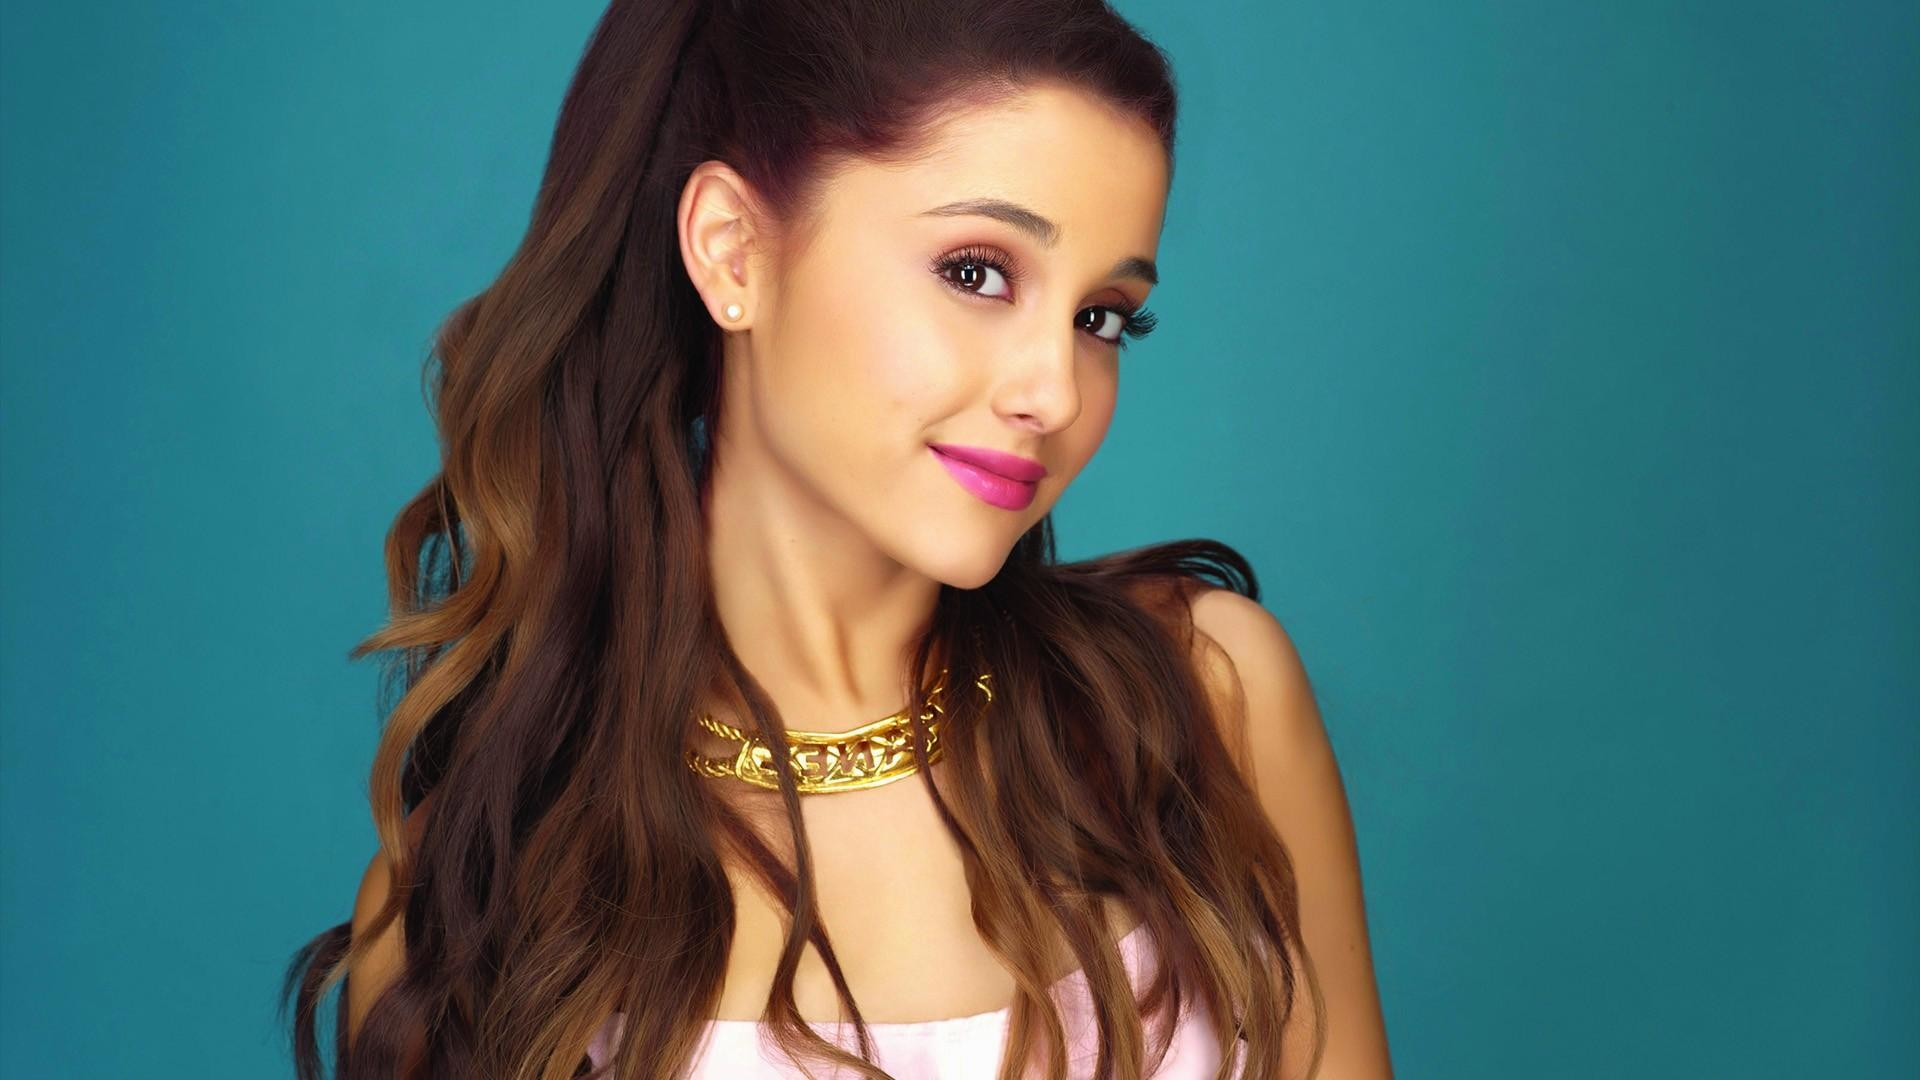 wallpaper.wiki-Images-Ariana-Grande-HD-PIC-WPC0011626